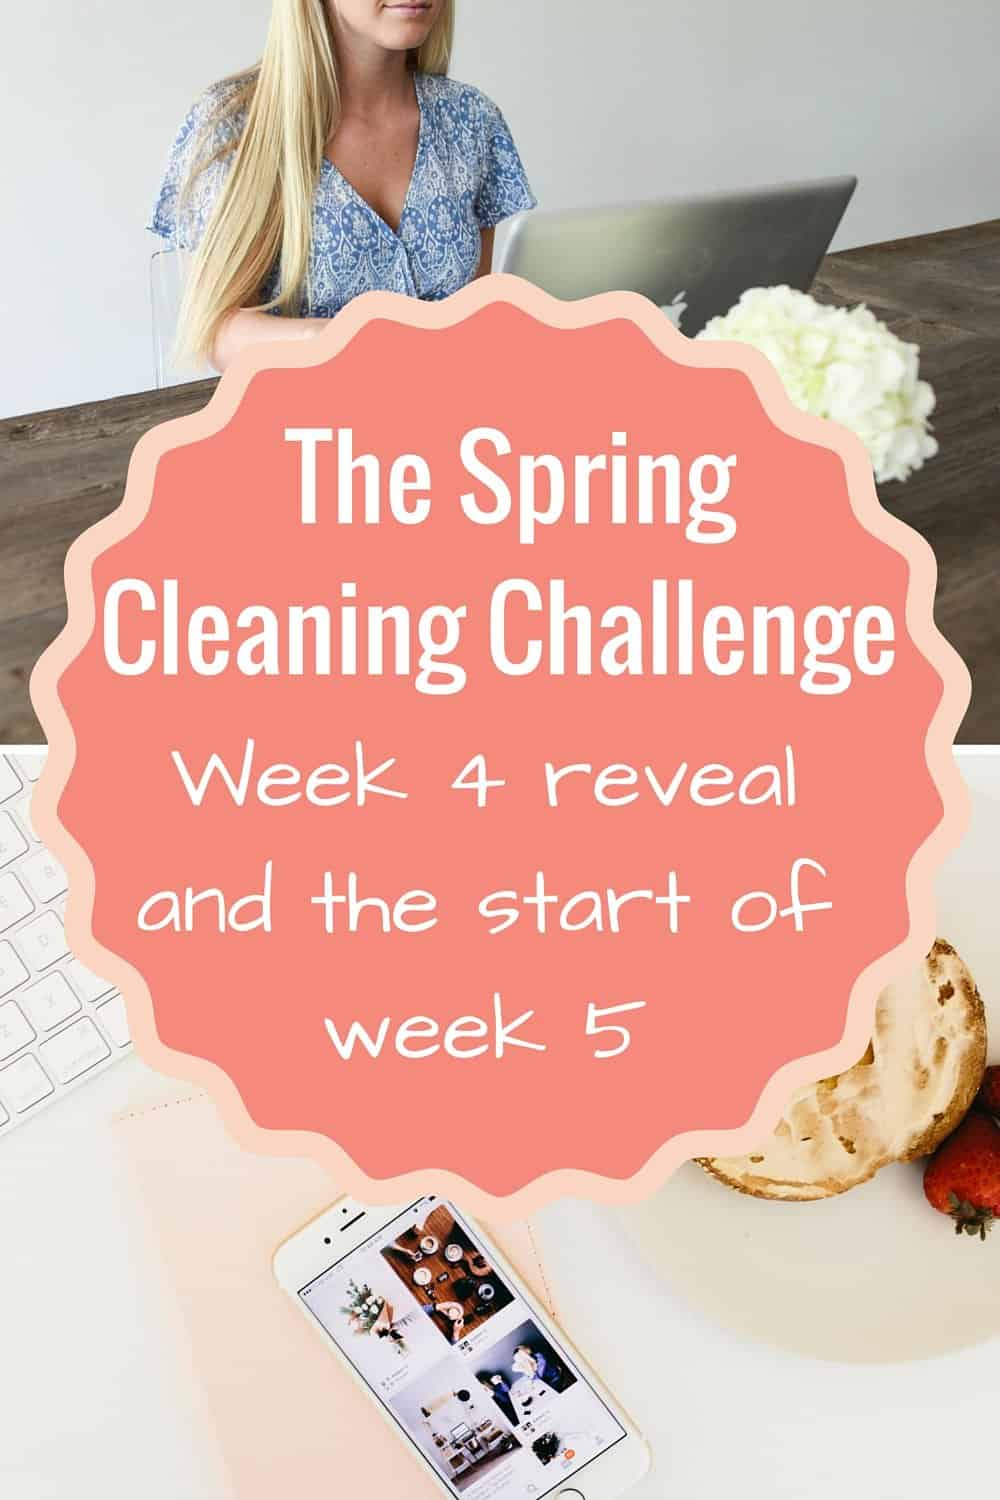 The Spring Cleaning Challenge Week 4 reveal and the start of week 5